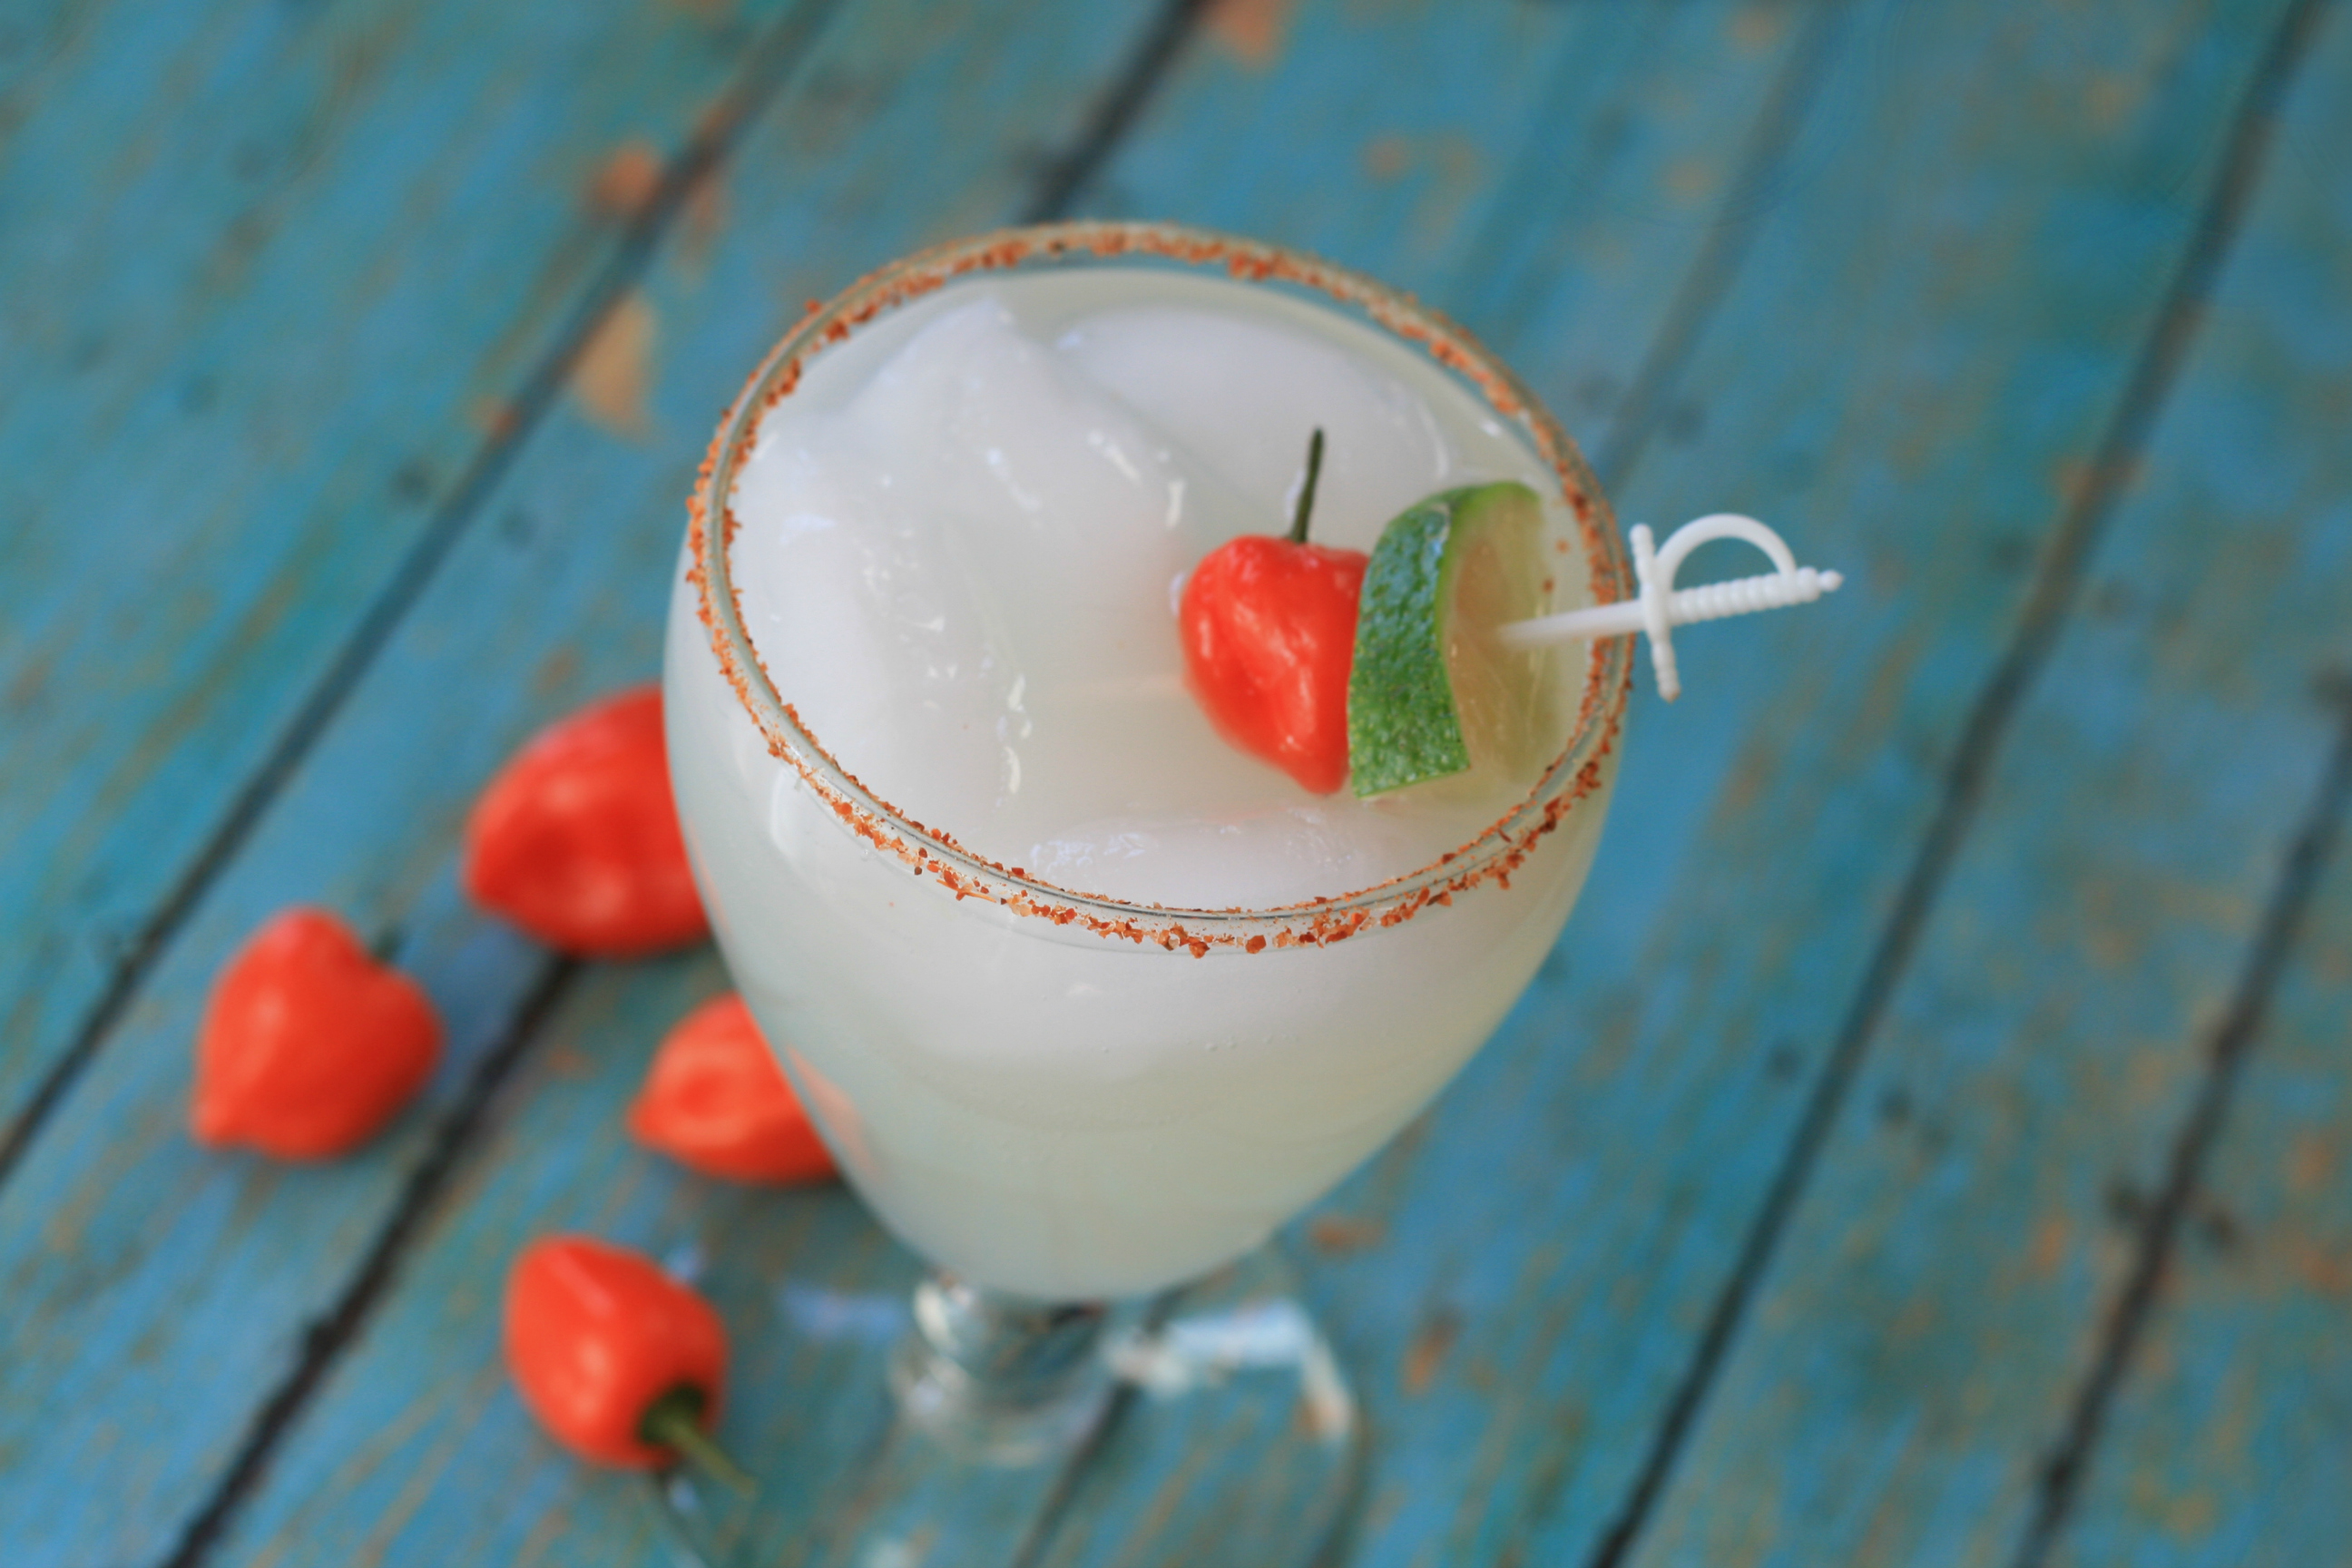 Here's a spicy version of the classic paloma cocktail. It features spicy habanero-infused tequila and grapefruit-flavored soda. To make your own habanero-infused tequila over the weekend, add 2 or 3 habanero peppers, seeded and quartered, into one 26-ounce bottle of tequila and set aside for a few days, then strain.